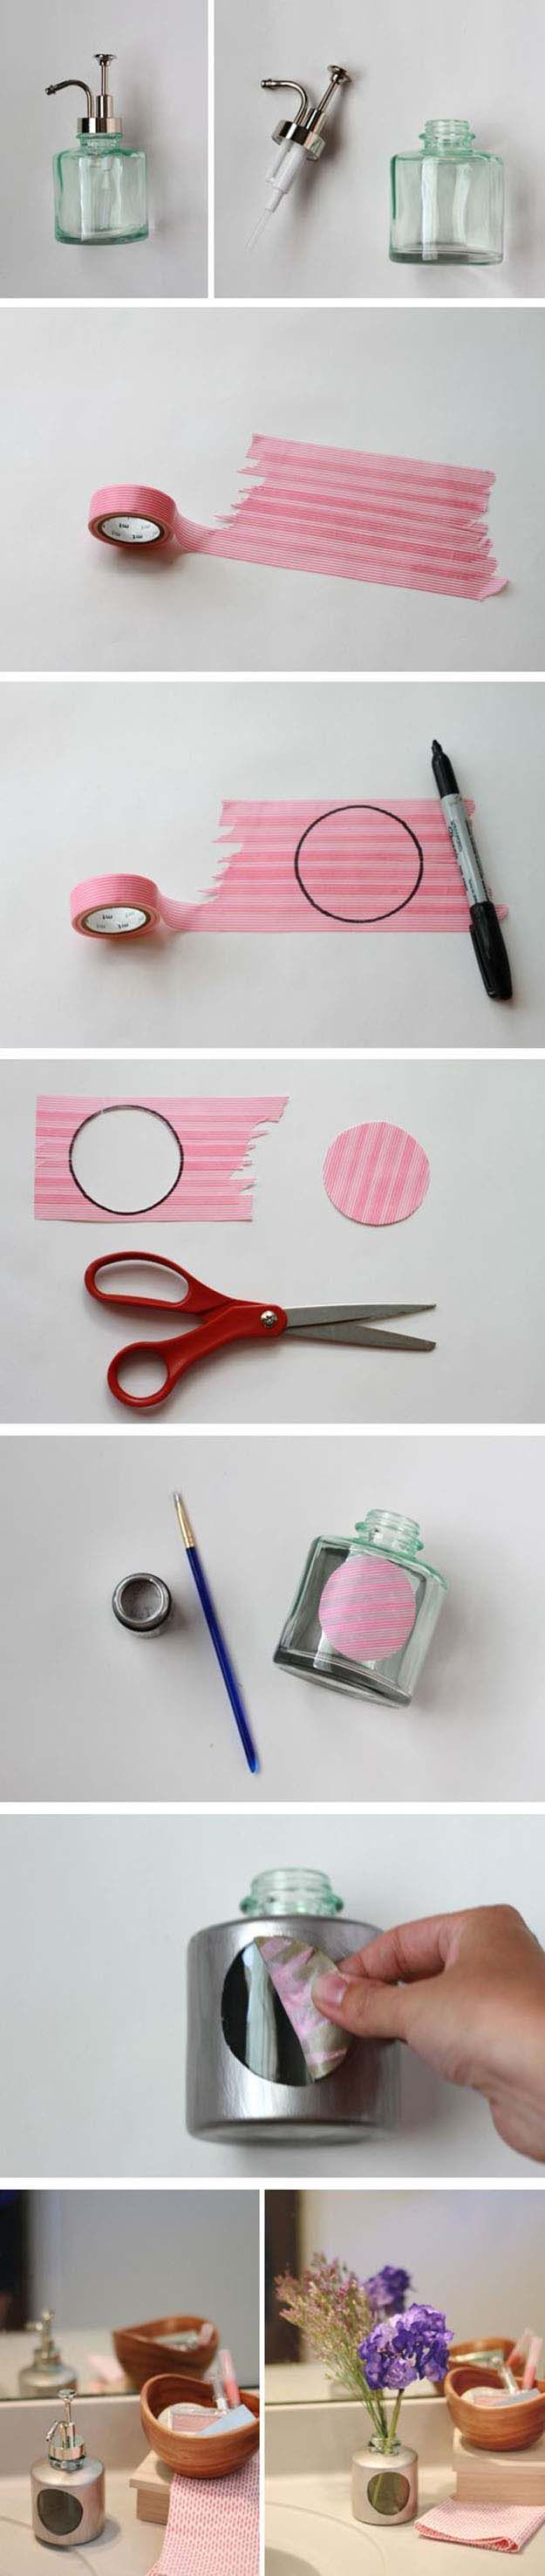 DIY Craft Ideas for the Home | Home Decor on a Budget | DIY Soap Dispenser Ideas | DIY Projects and Crafts by DIY JOY at http://diyjoy.com/craft-ideas-diy-soap-dispensers